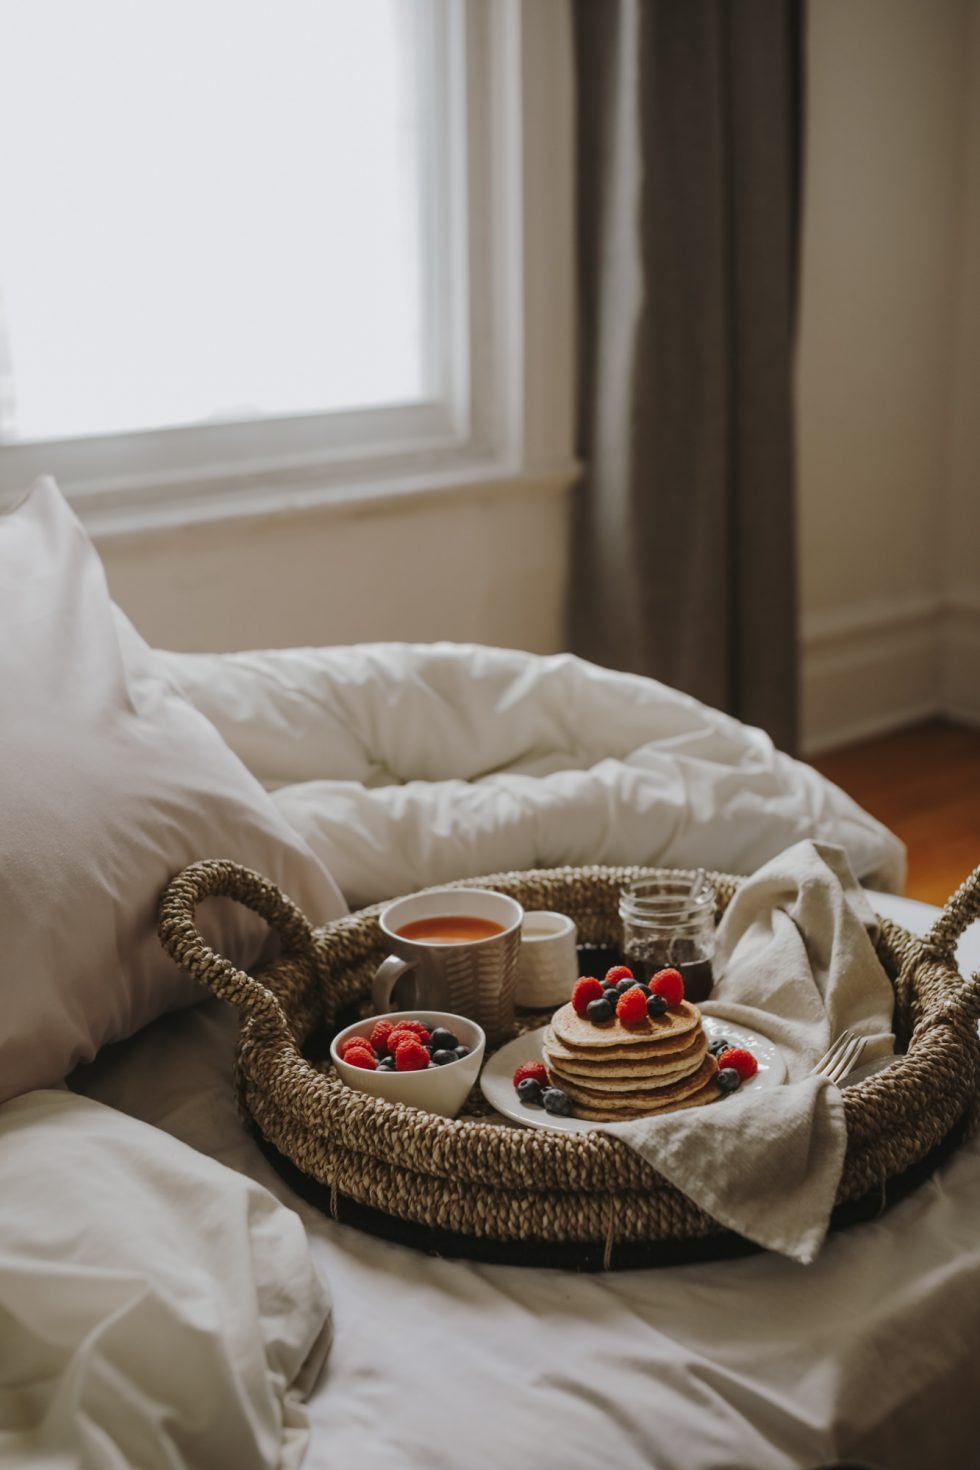 breakfast-bed-montreal-lifestyle-photographer-laura-g-diaz